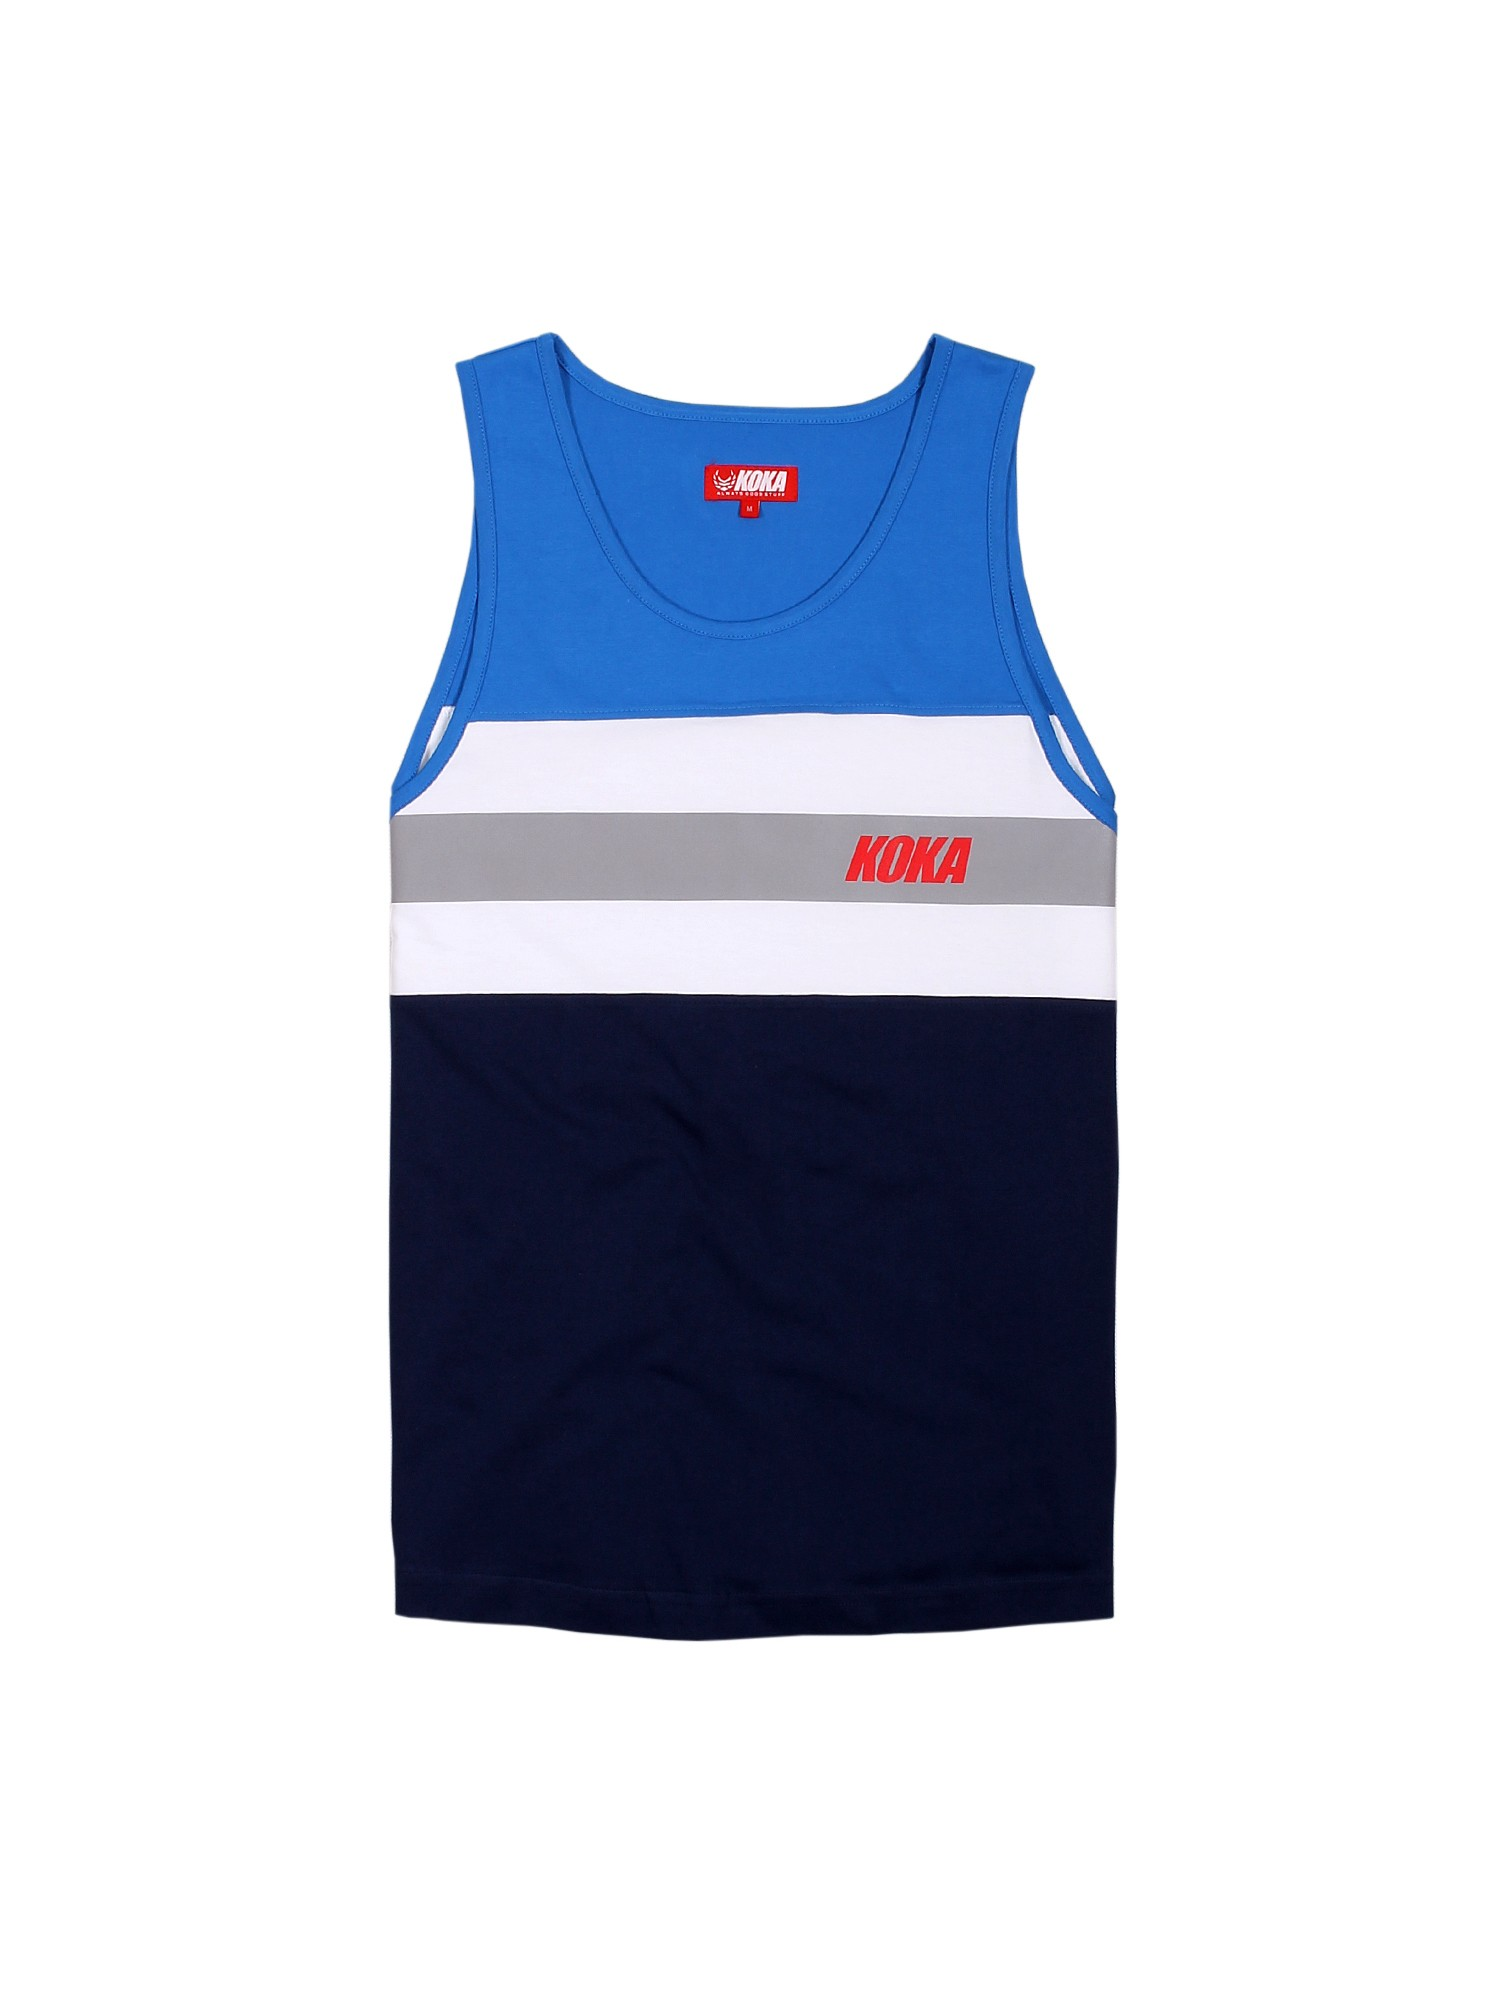 Tank Top Stripes Blue - 72770